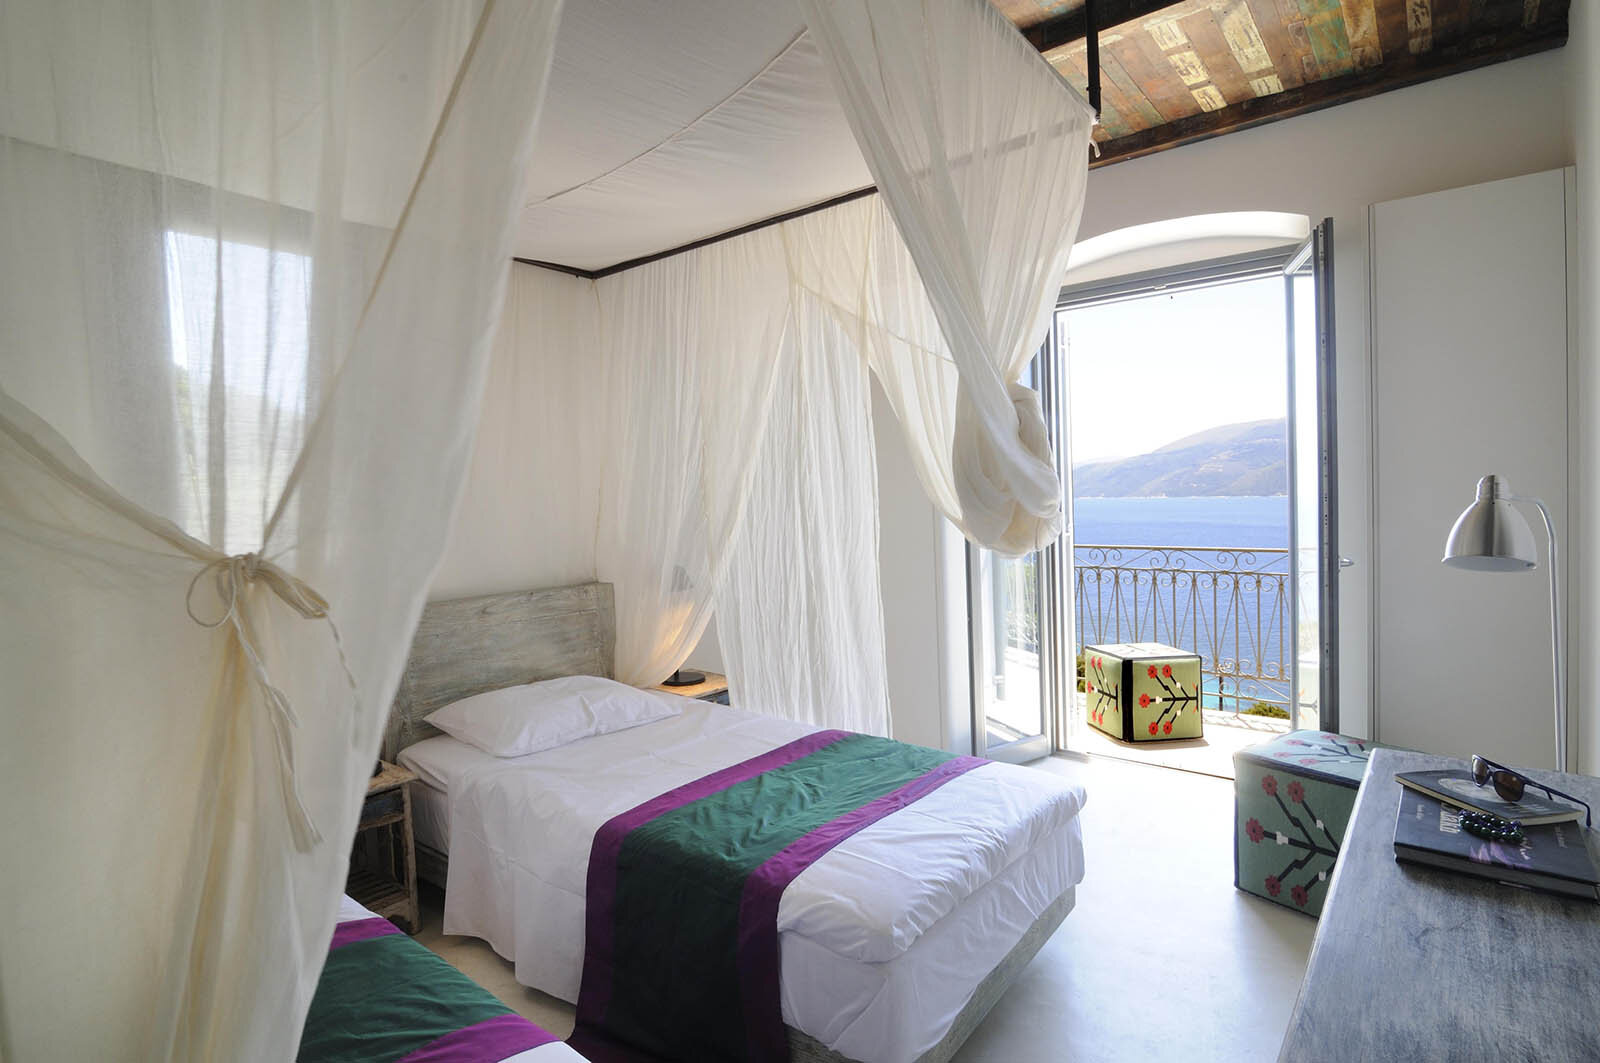 India - Shared - $3250 (per person - you'll be paired with another sister in our group)Large, spacious bedroom with two twin beds at the end of the first floor corridor. Includes ensuite bathroom with bath tub, air conditioning, large private balcony, and views of the Ionian sea.